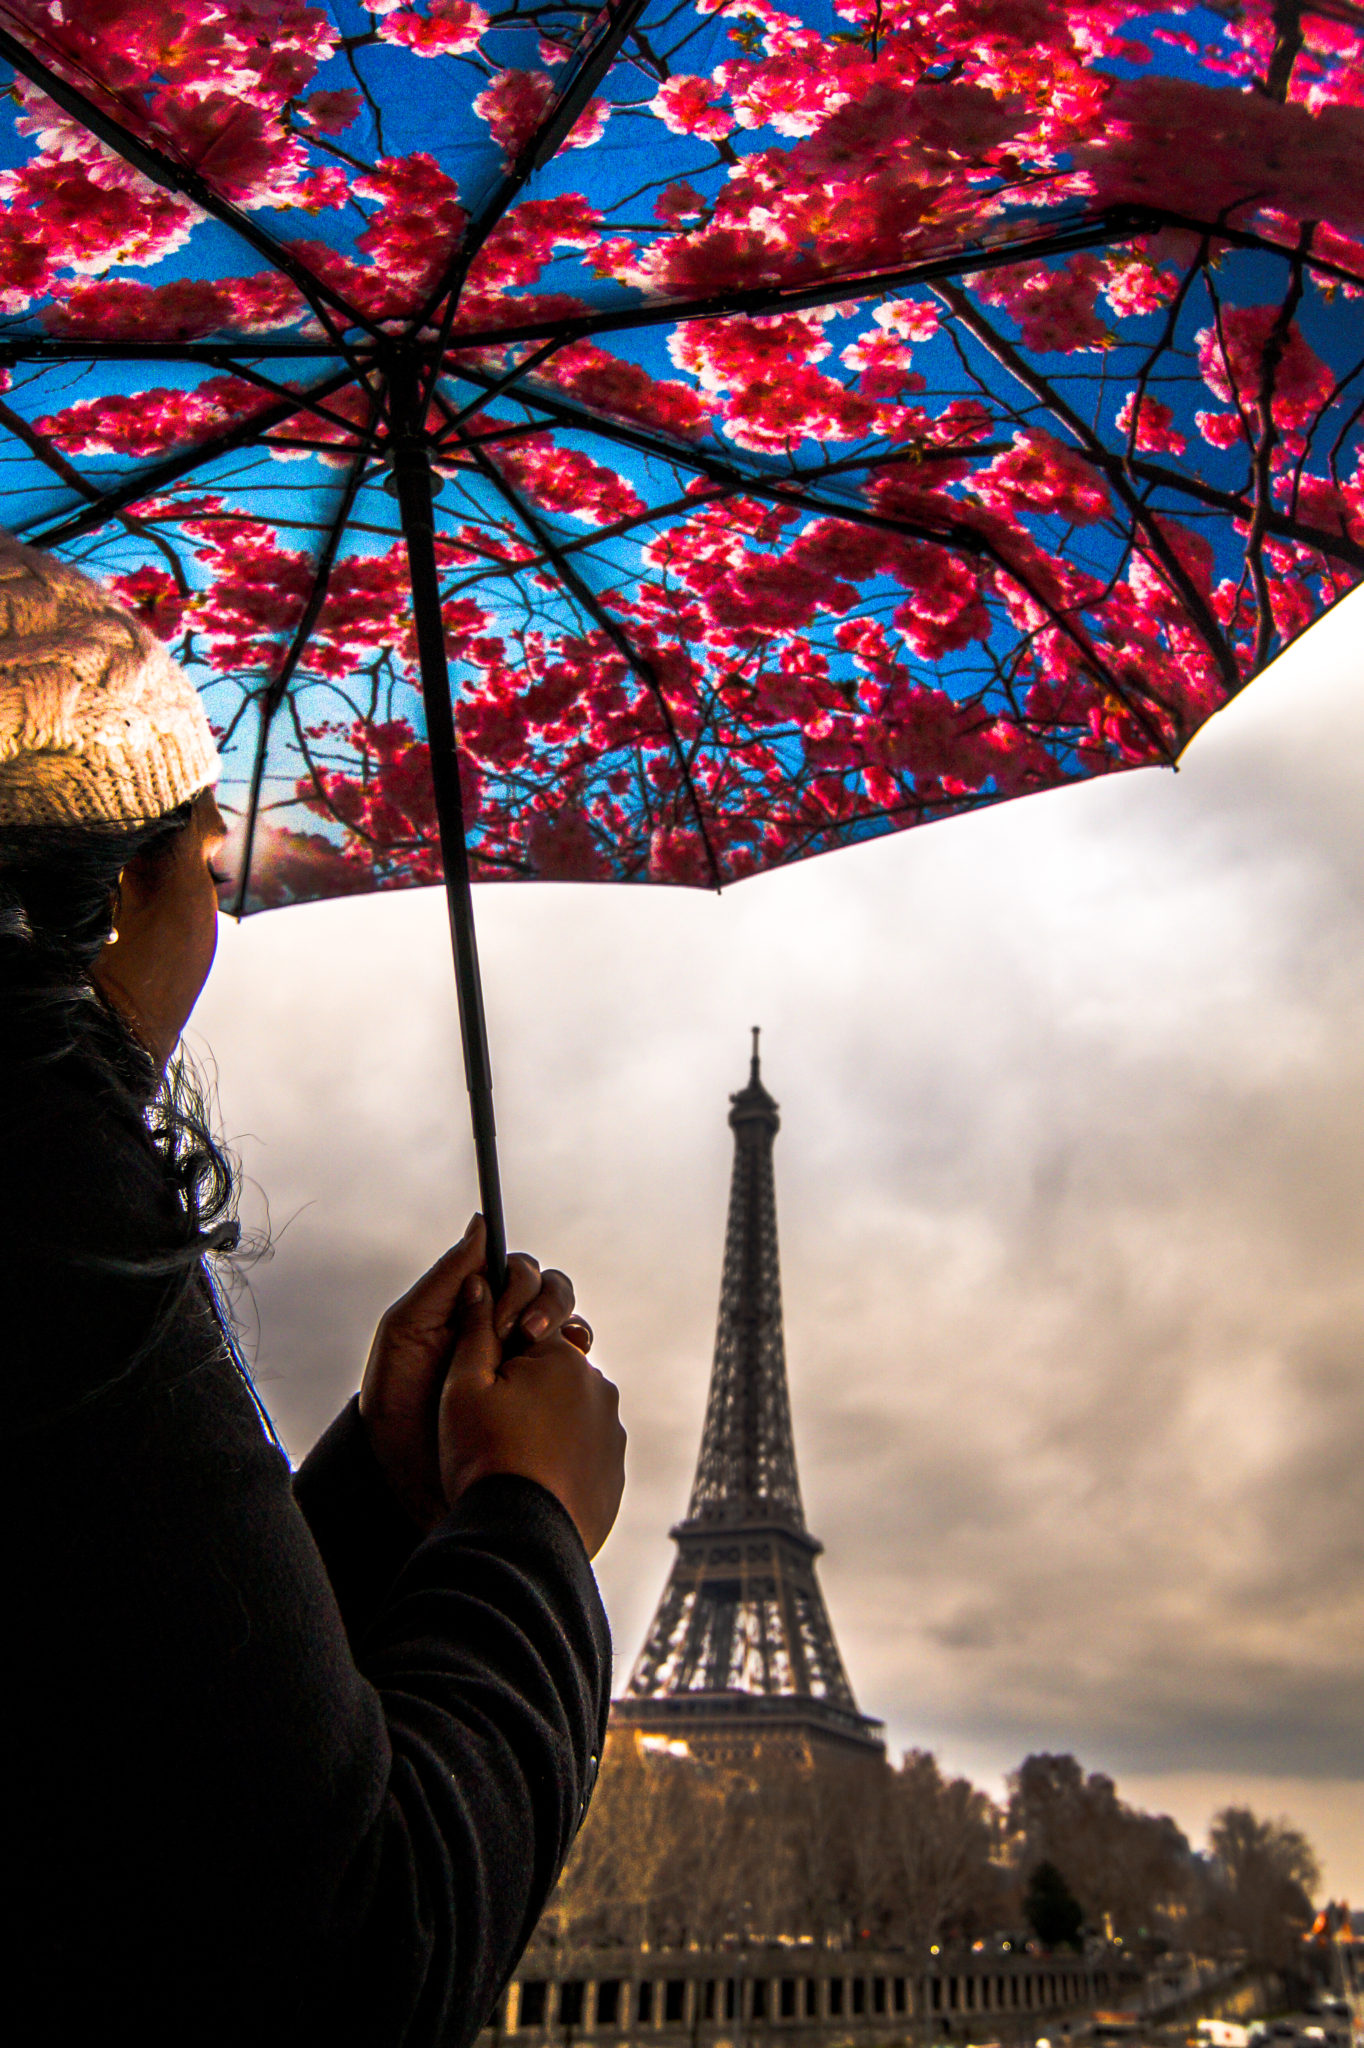 Hemaposesesvalises_Happysweeds_Cherry_Umbrella_Tour_Eiffel_paris_blog_mode_blanckwhite